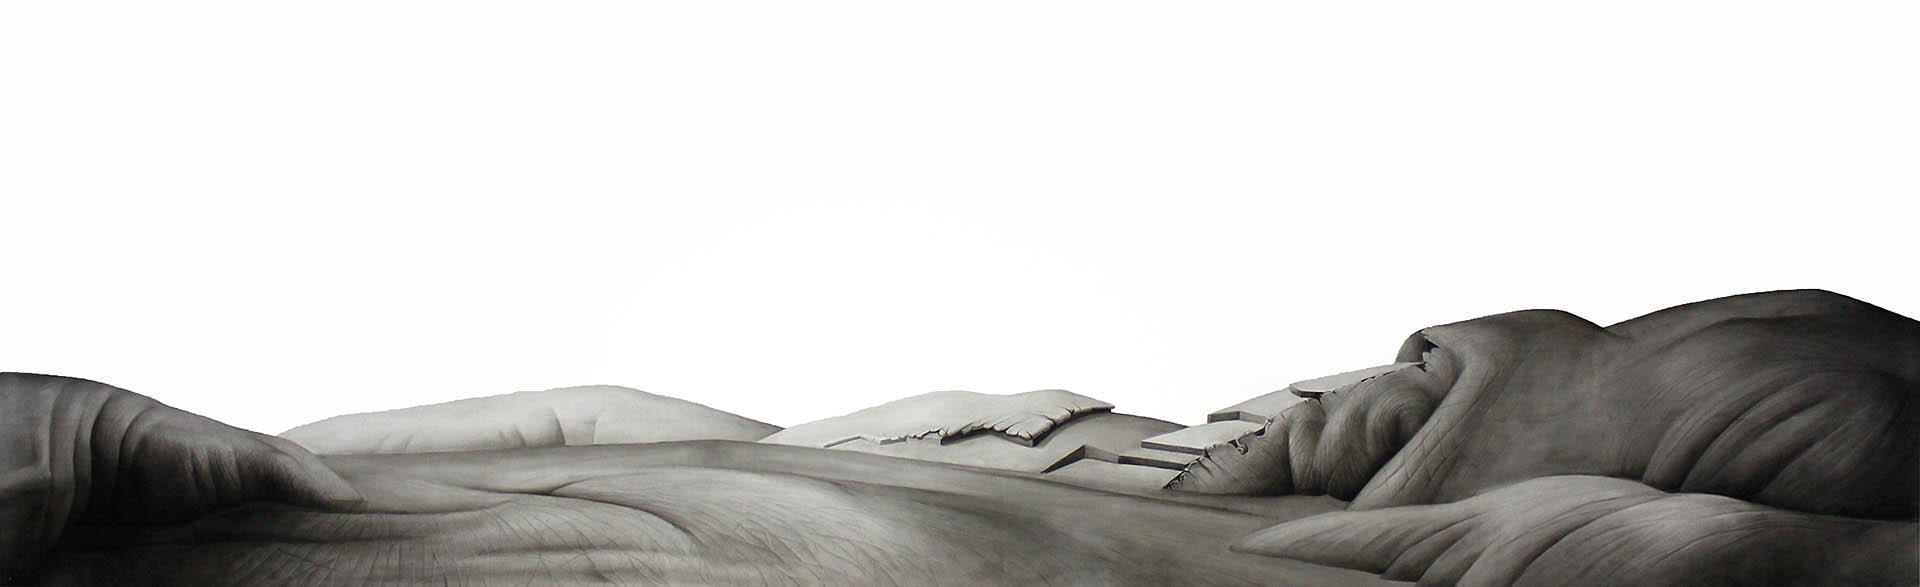 drawing of altered landscape with features resembling human hand